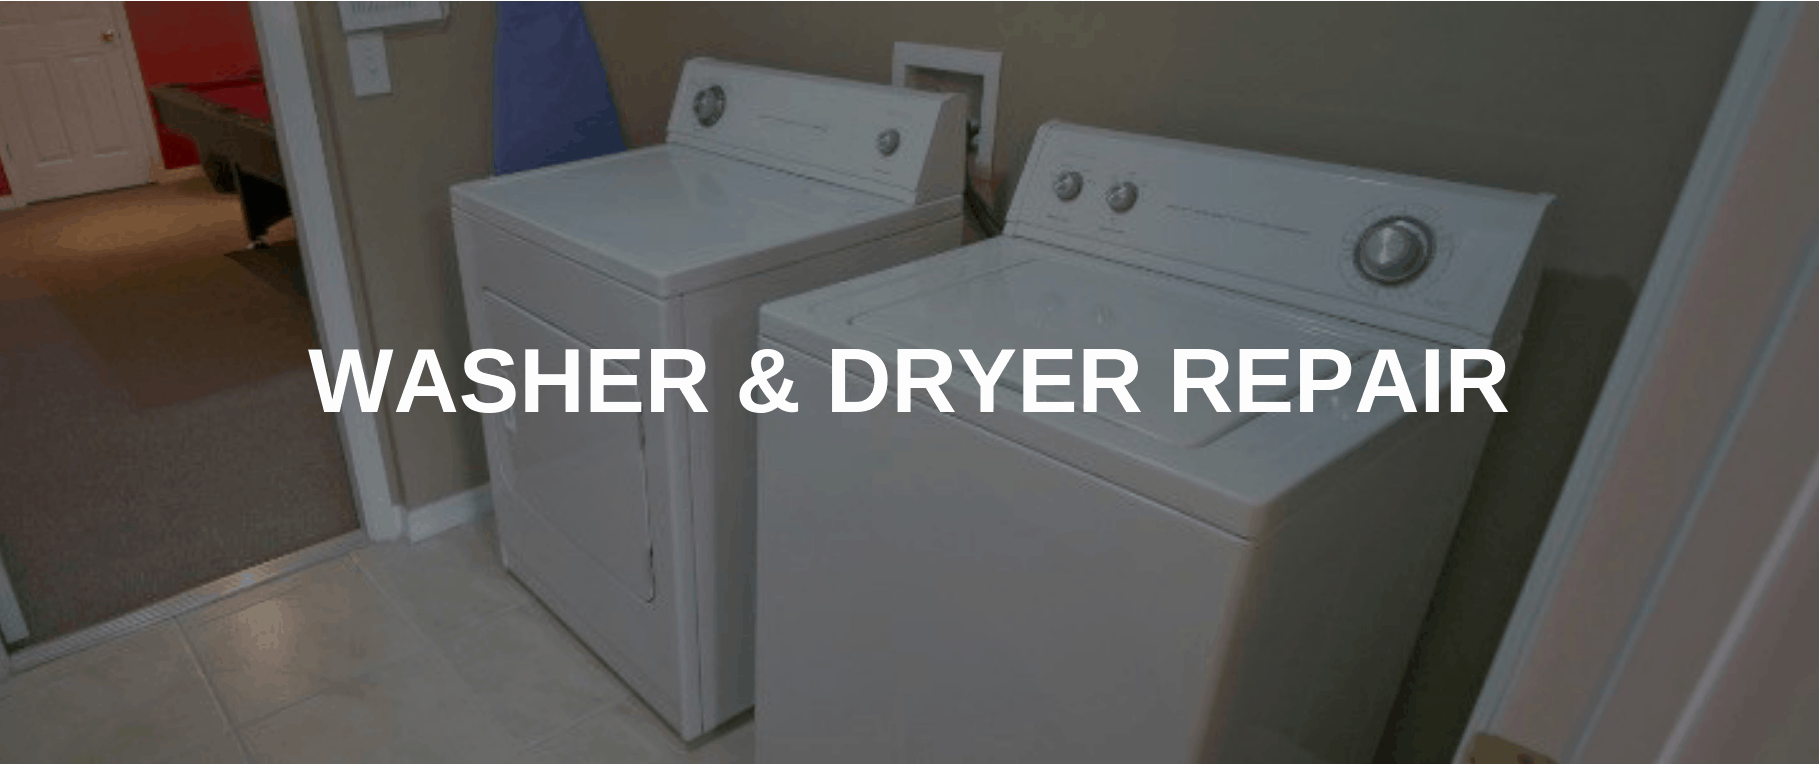 washing machine repair olathe